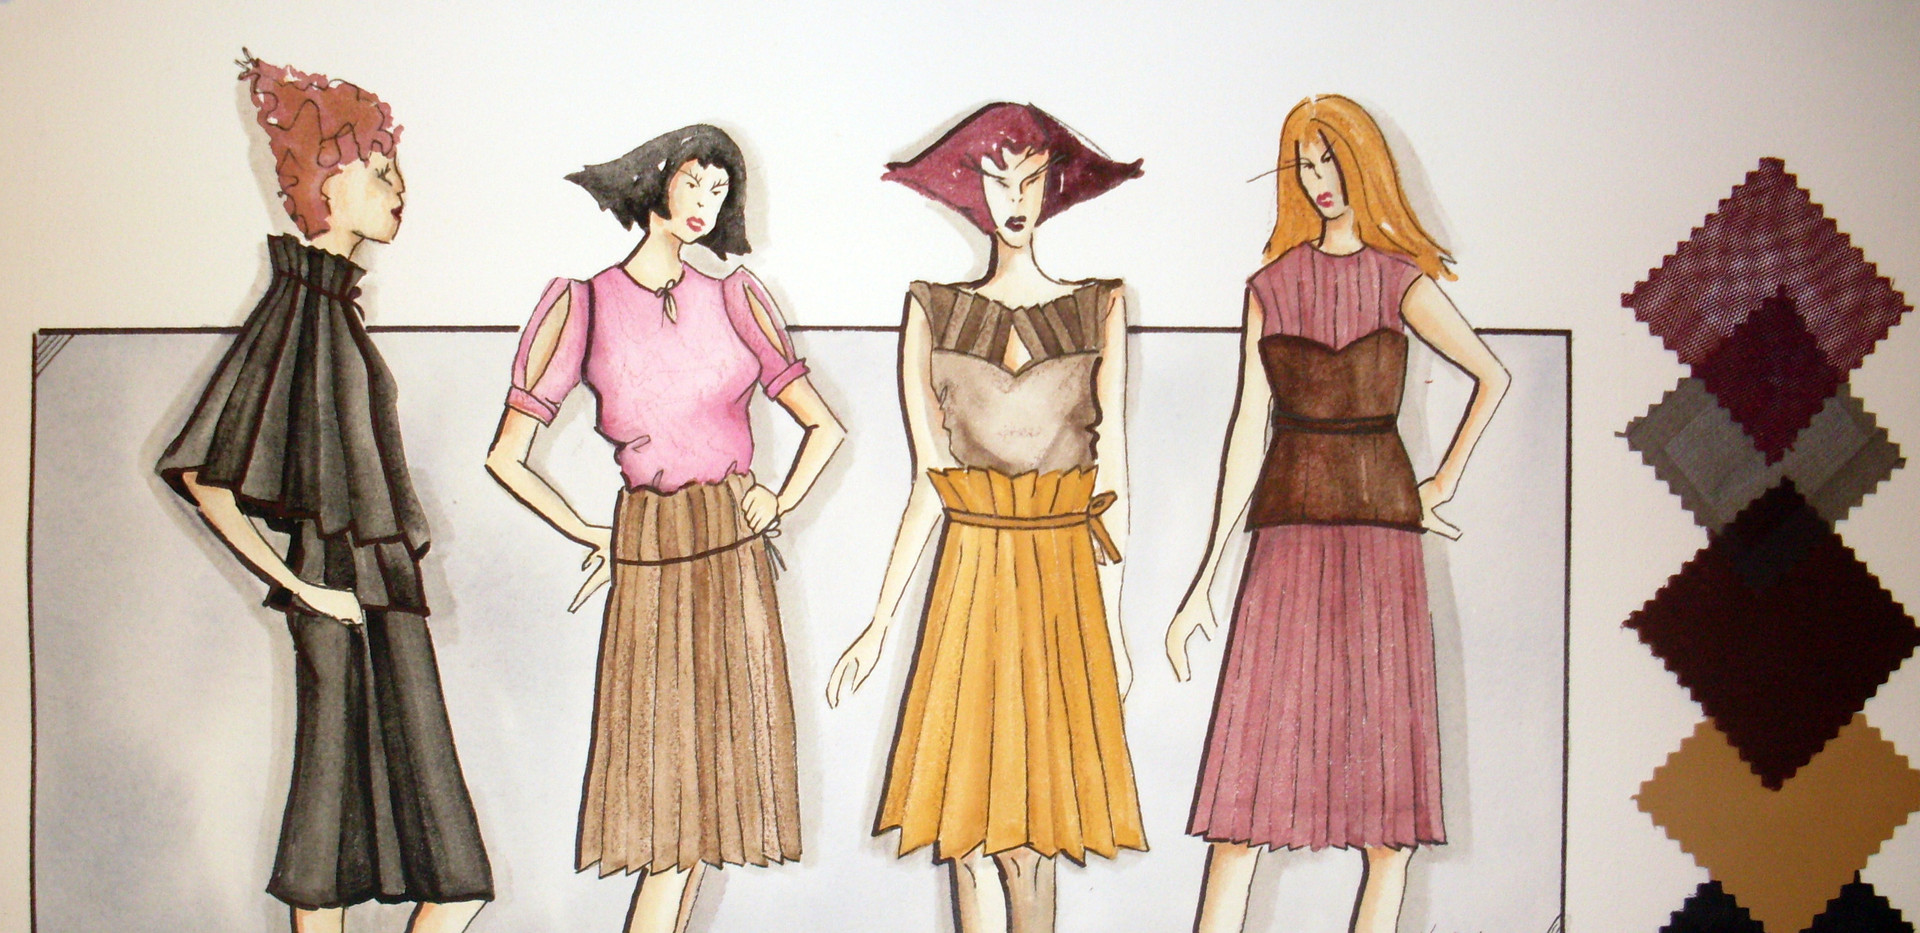 Work from my BFA in Fashion Design from SCAD